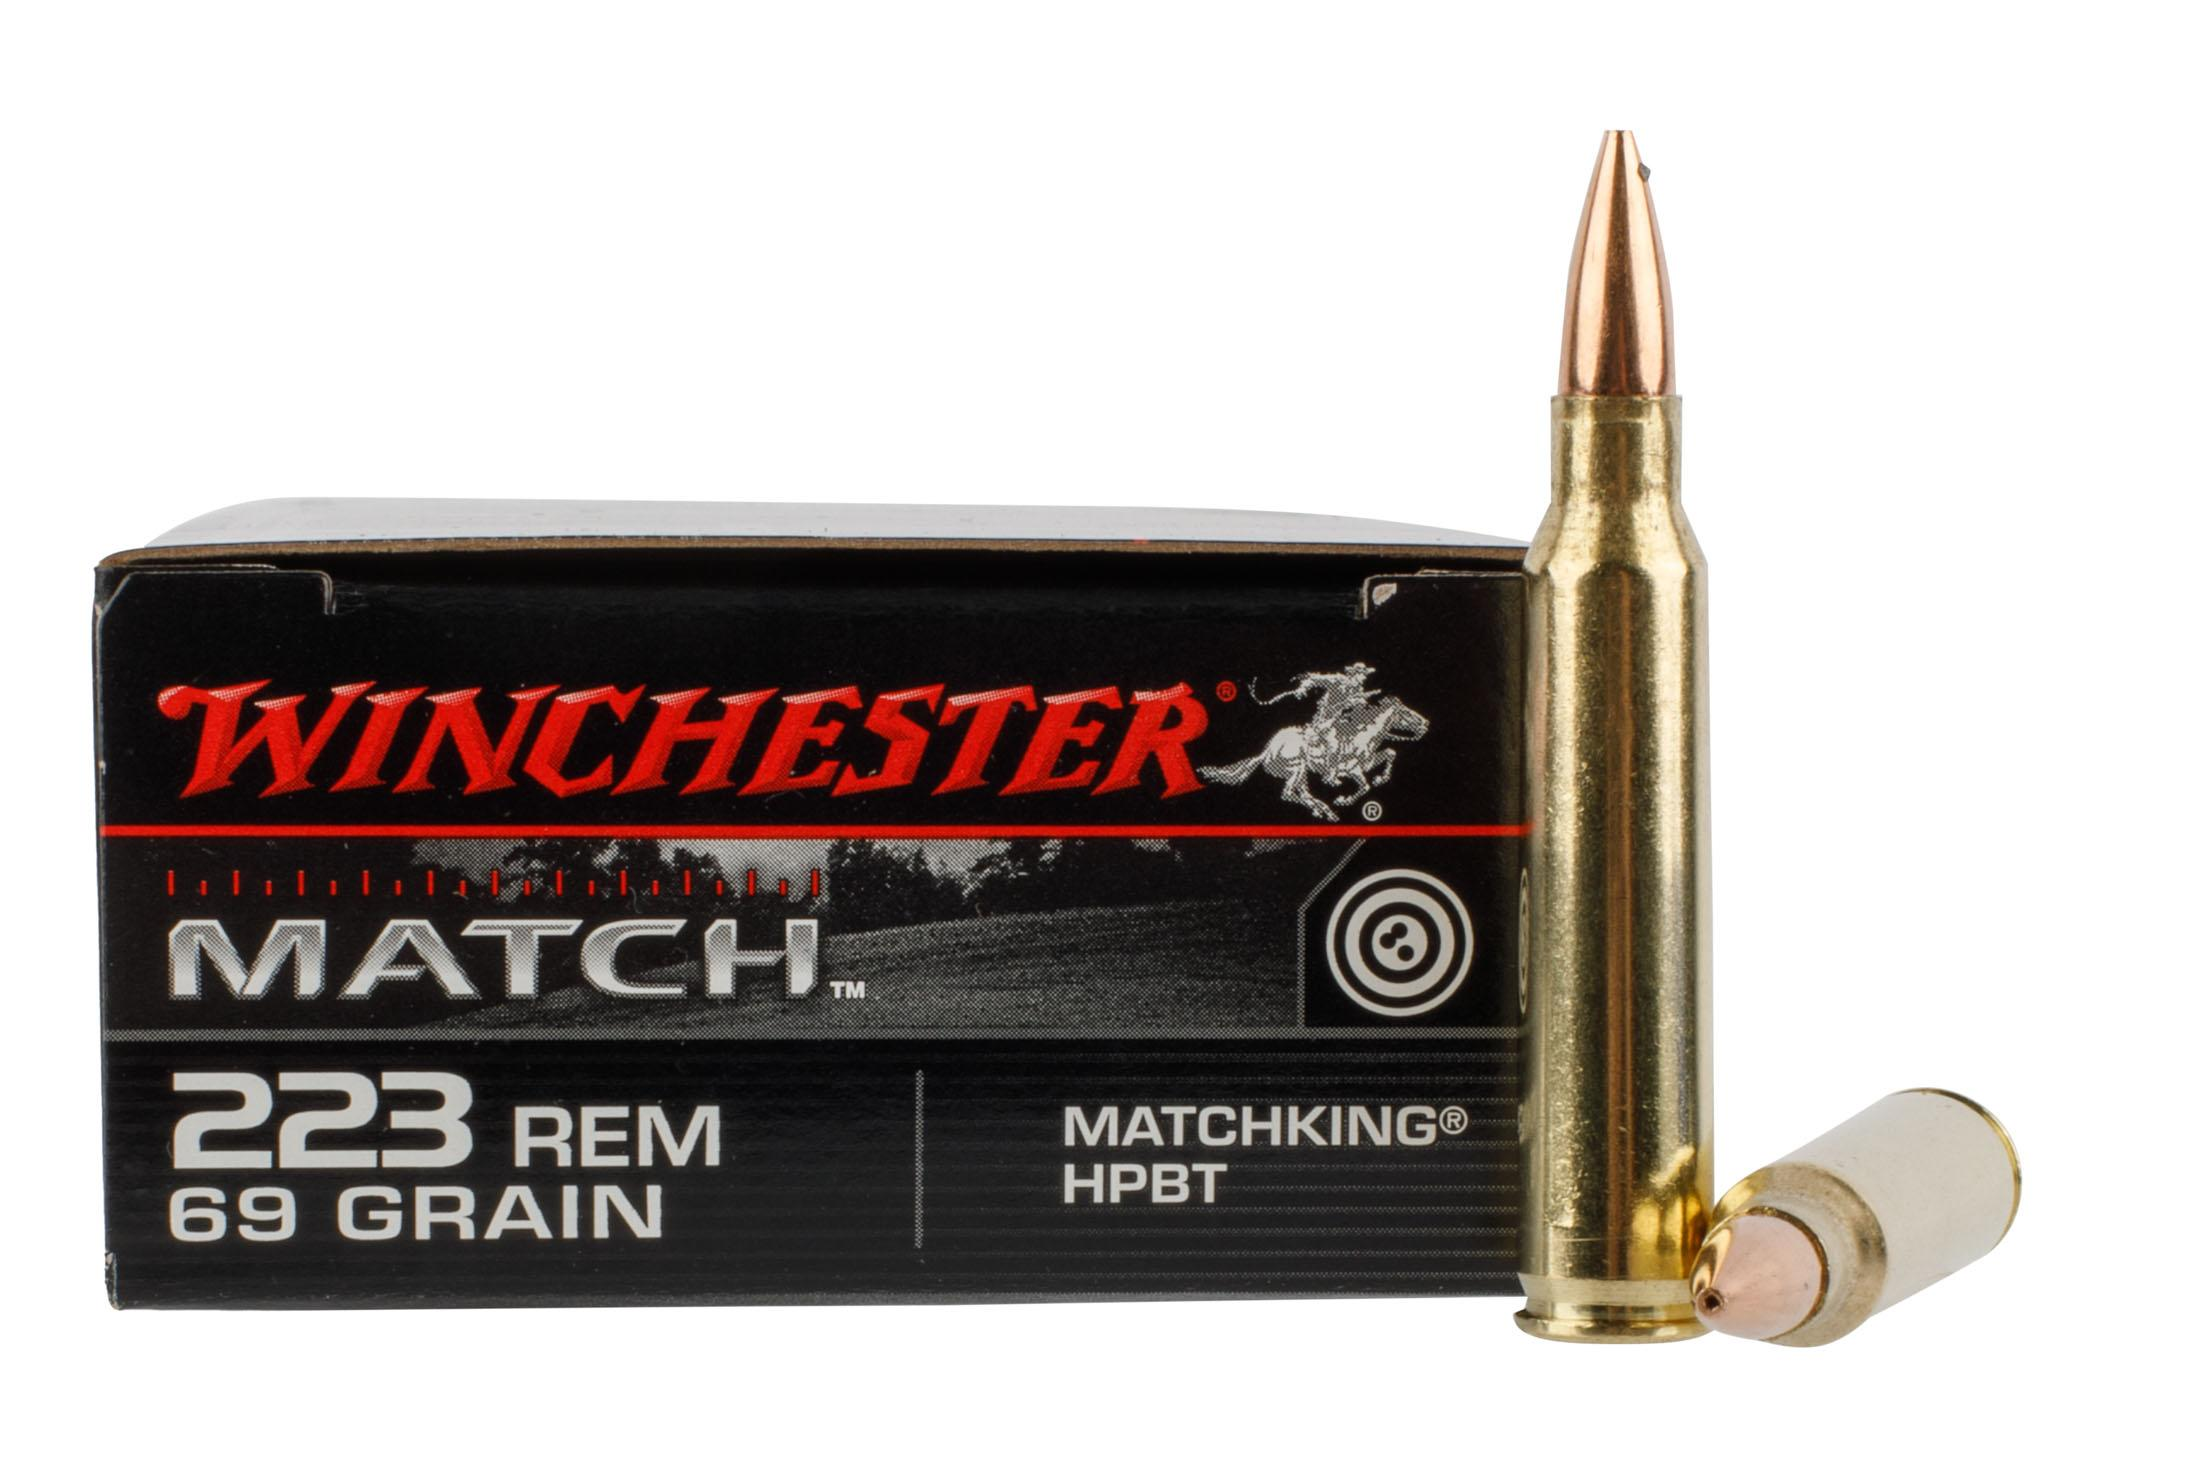 rifle ammo for sale